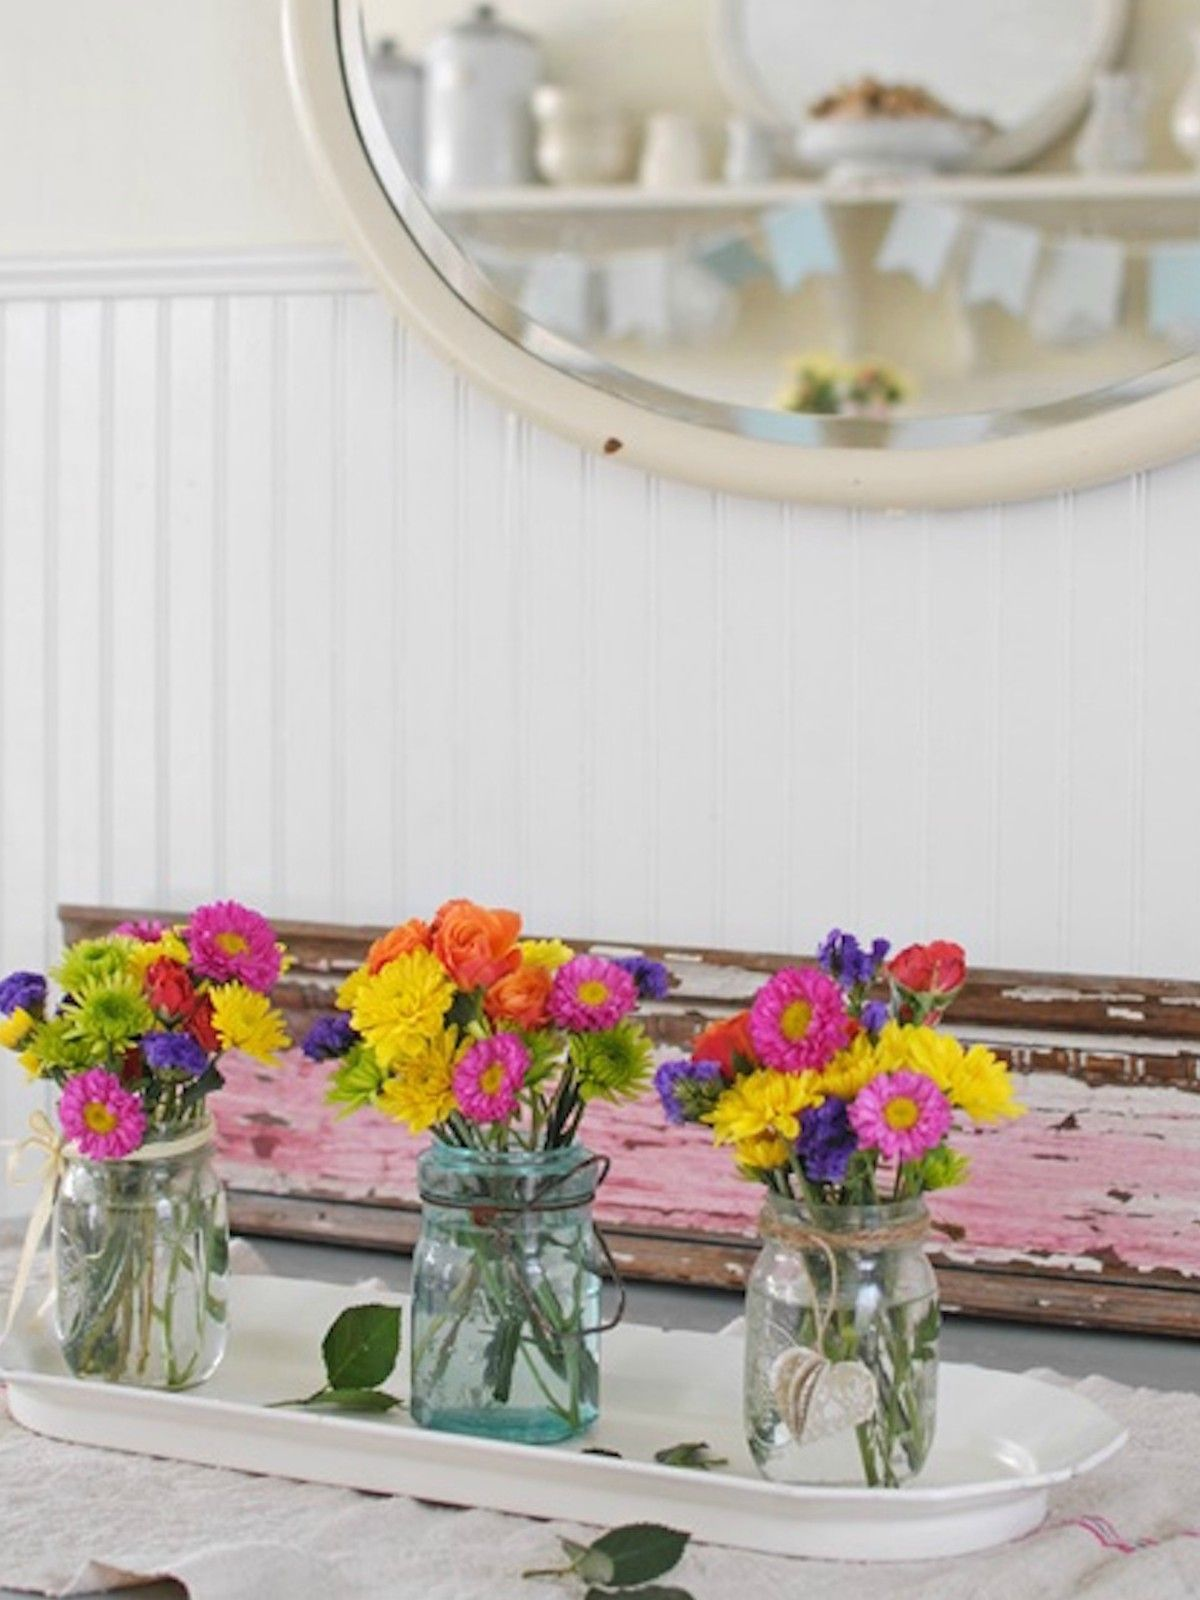 17 Pretty Mason Jar Flower Arrangements - Best Floral Centerpieces ...